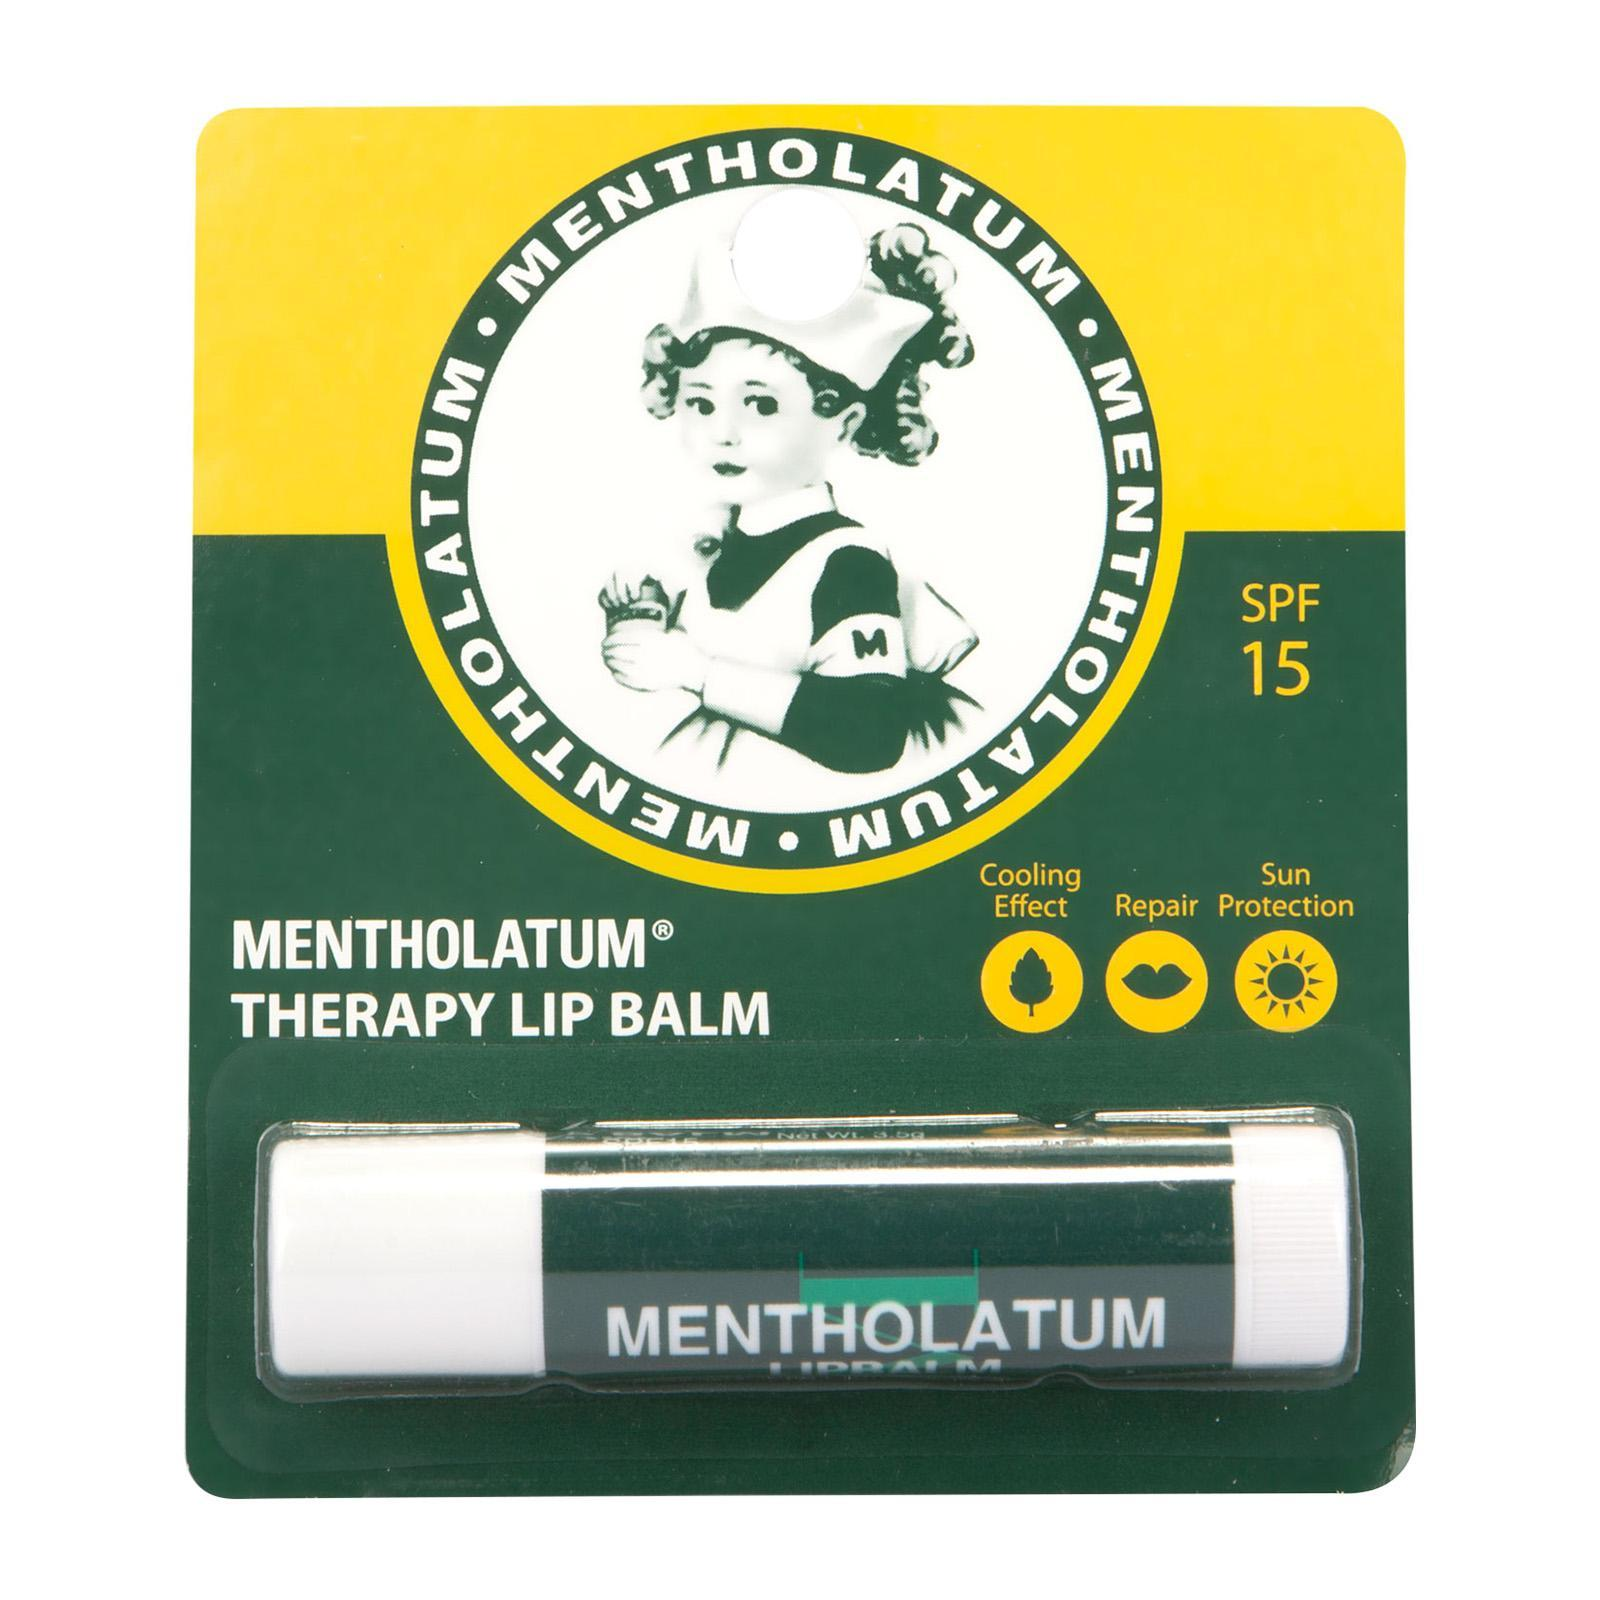 Mentholatum Therapy Lip Balm Cooling Sensation with SPF 15